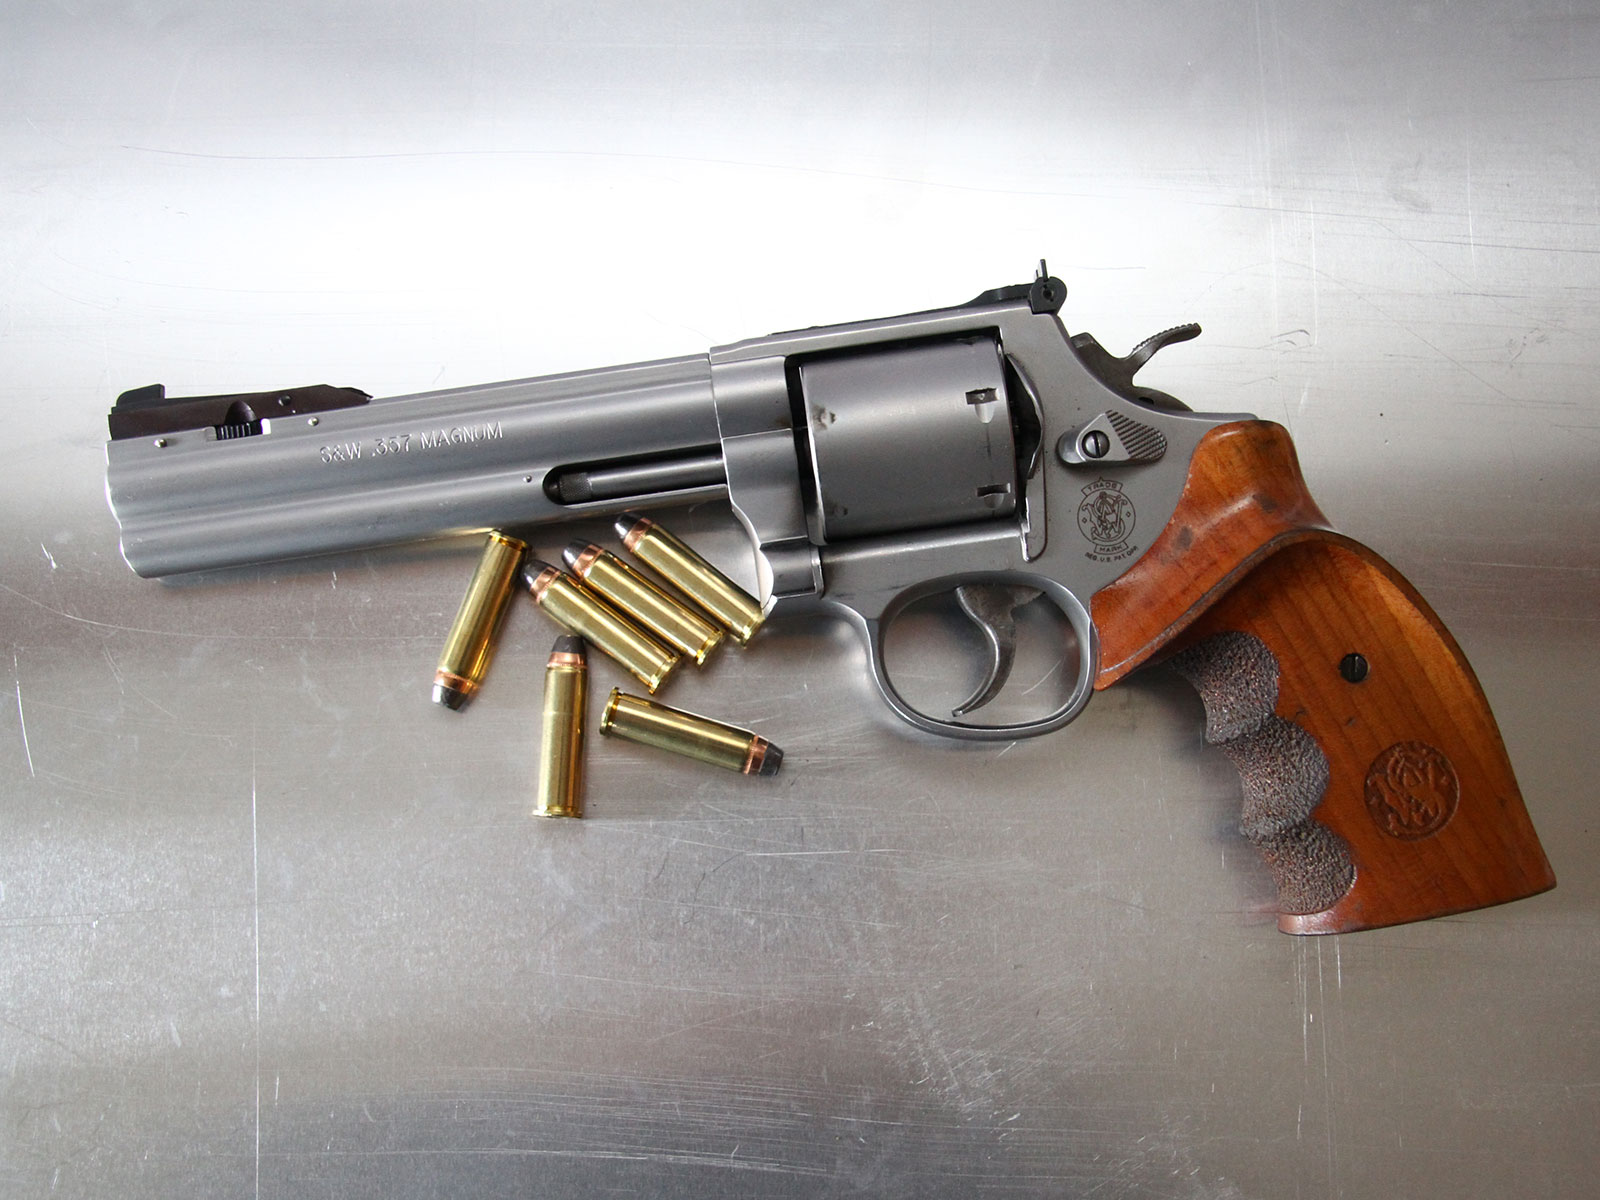 SH_Web_Wir_Waffen_Smith-Wesson 357 Magnum-1_1800x1200